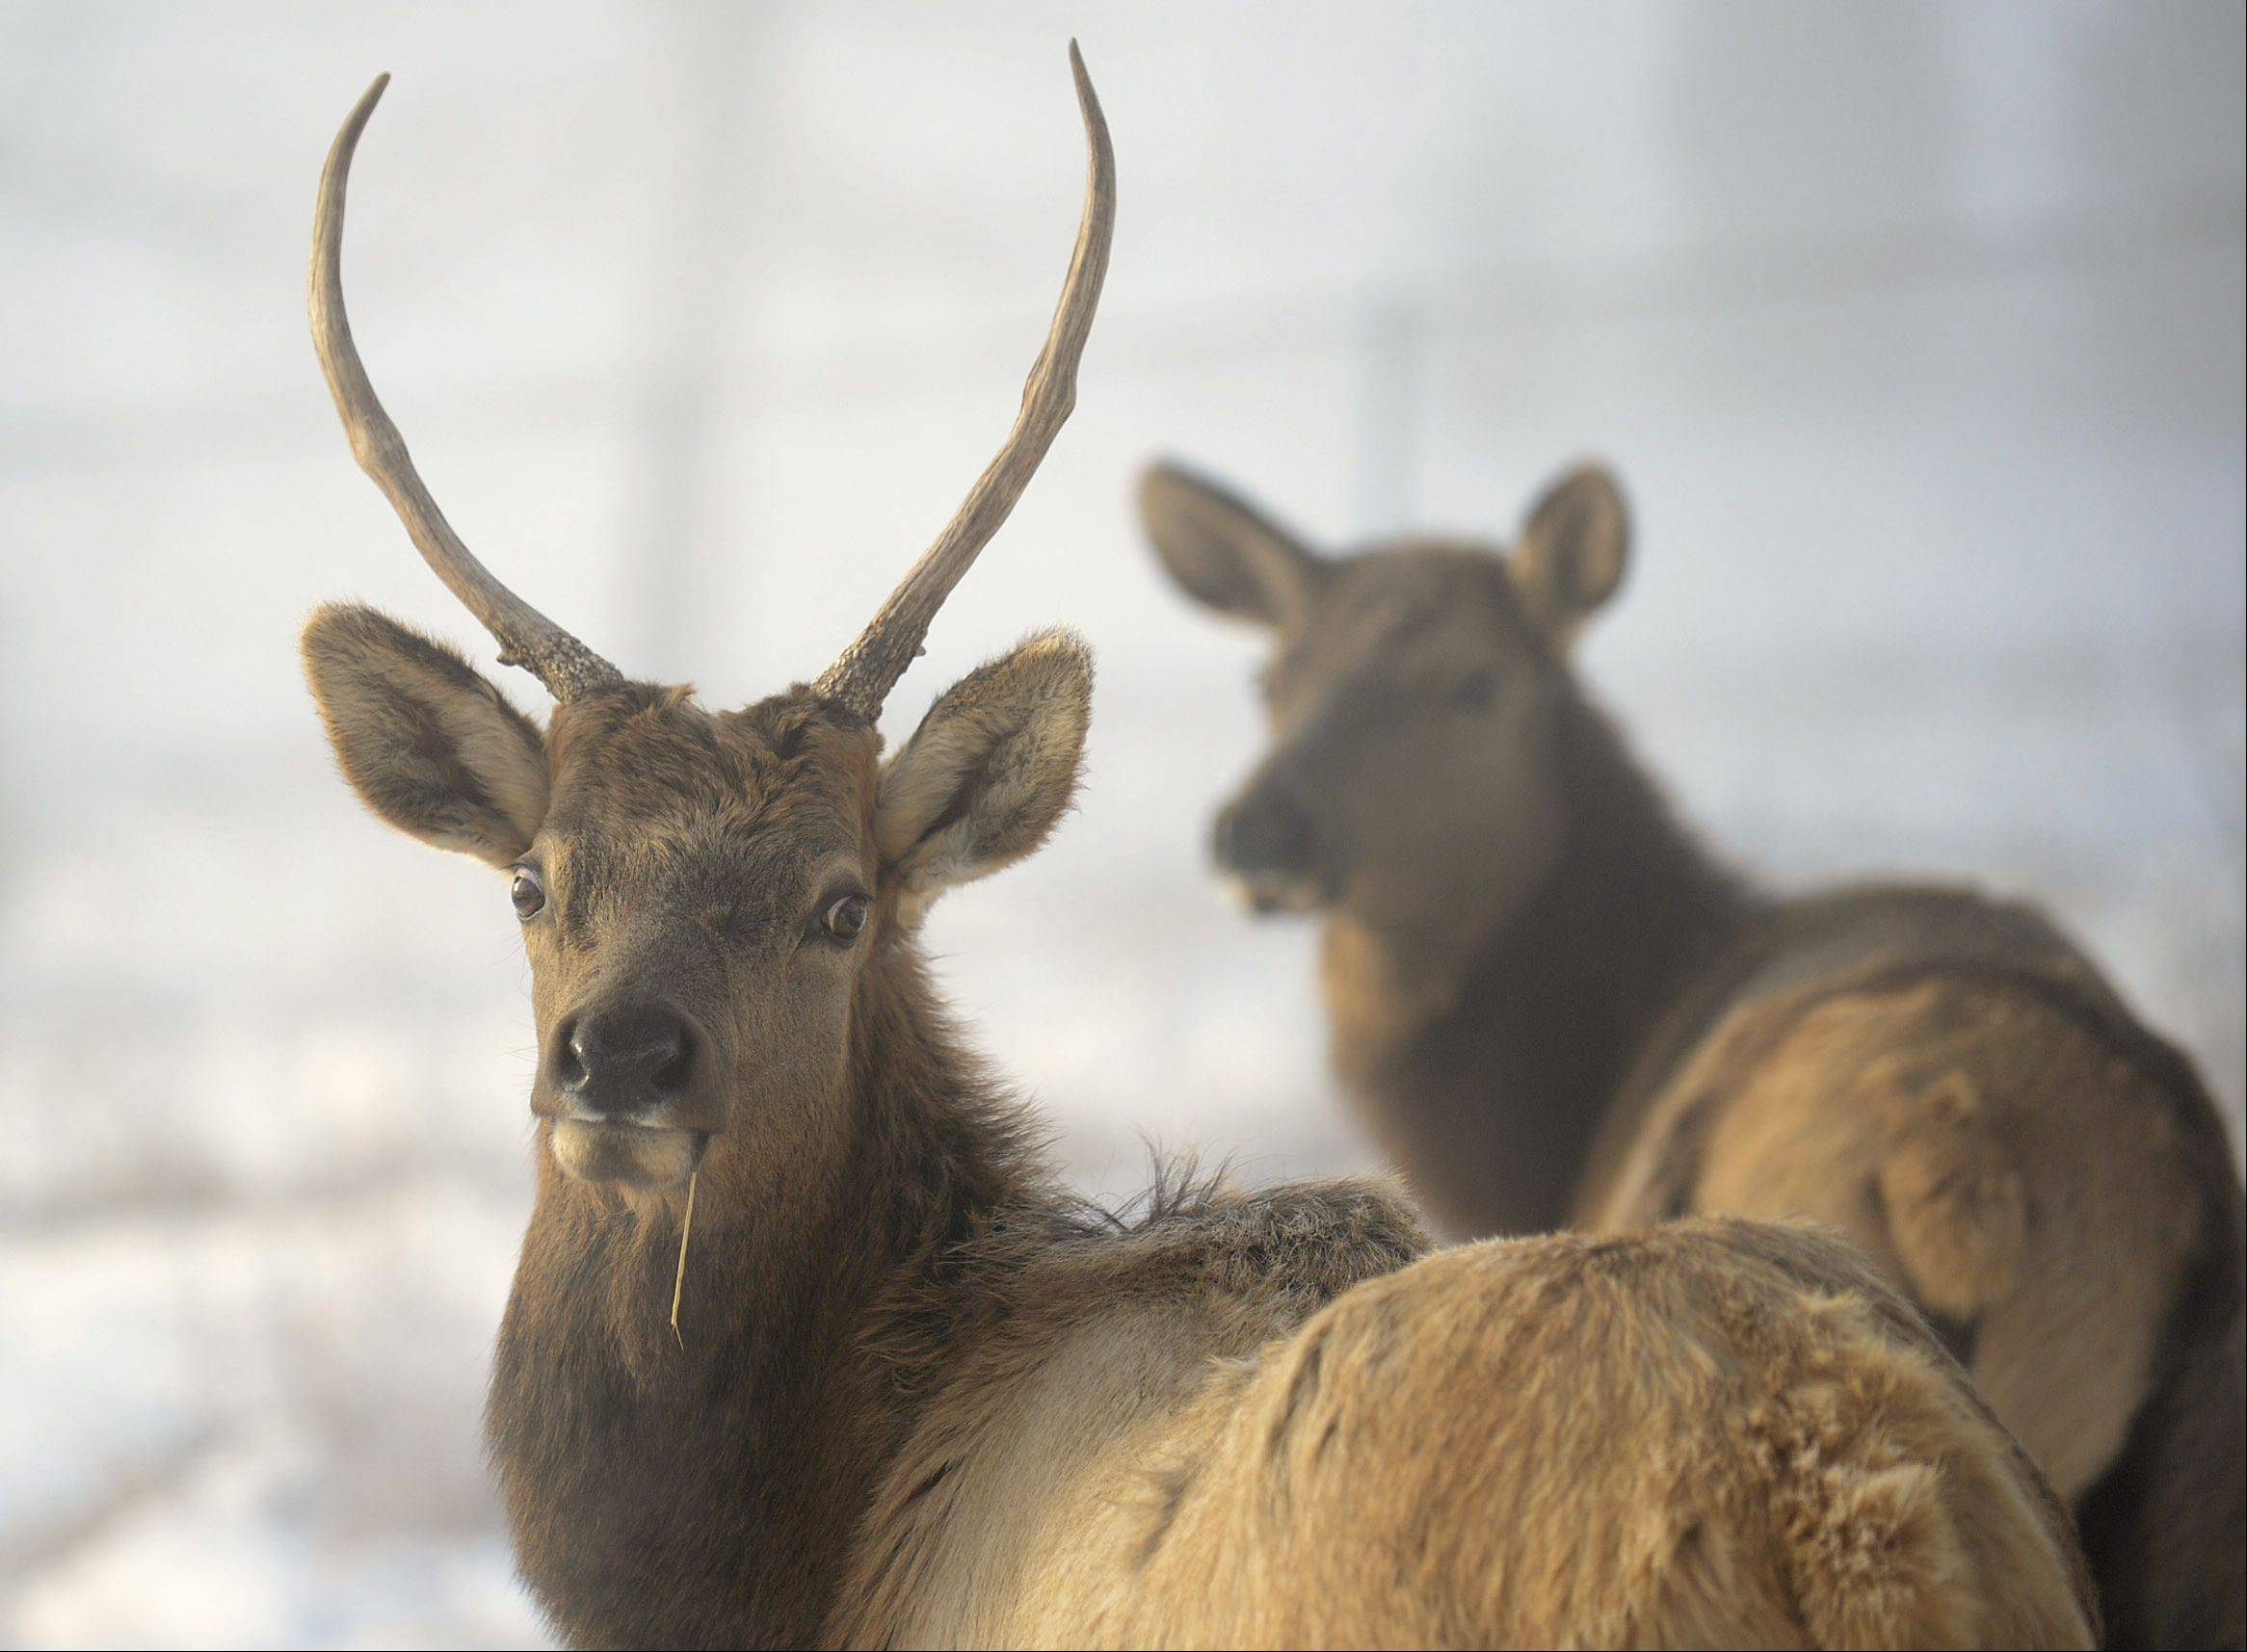 These are among four new elk that came this month to Lords Park Zoo in Elgin.